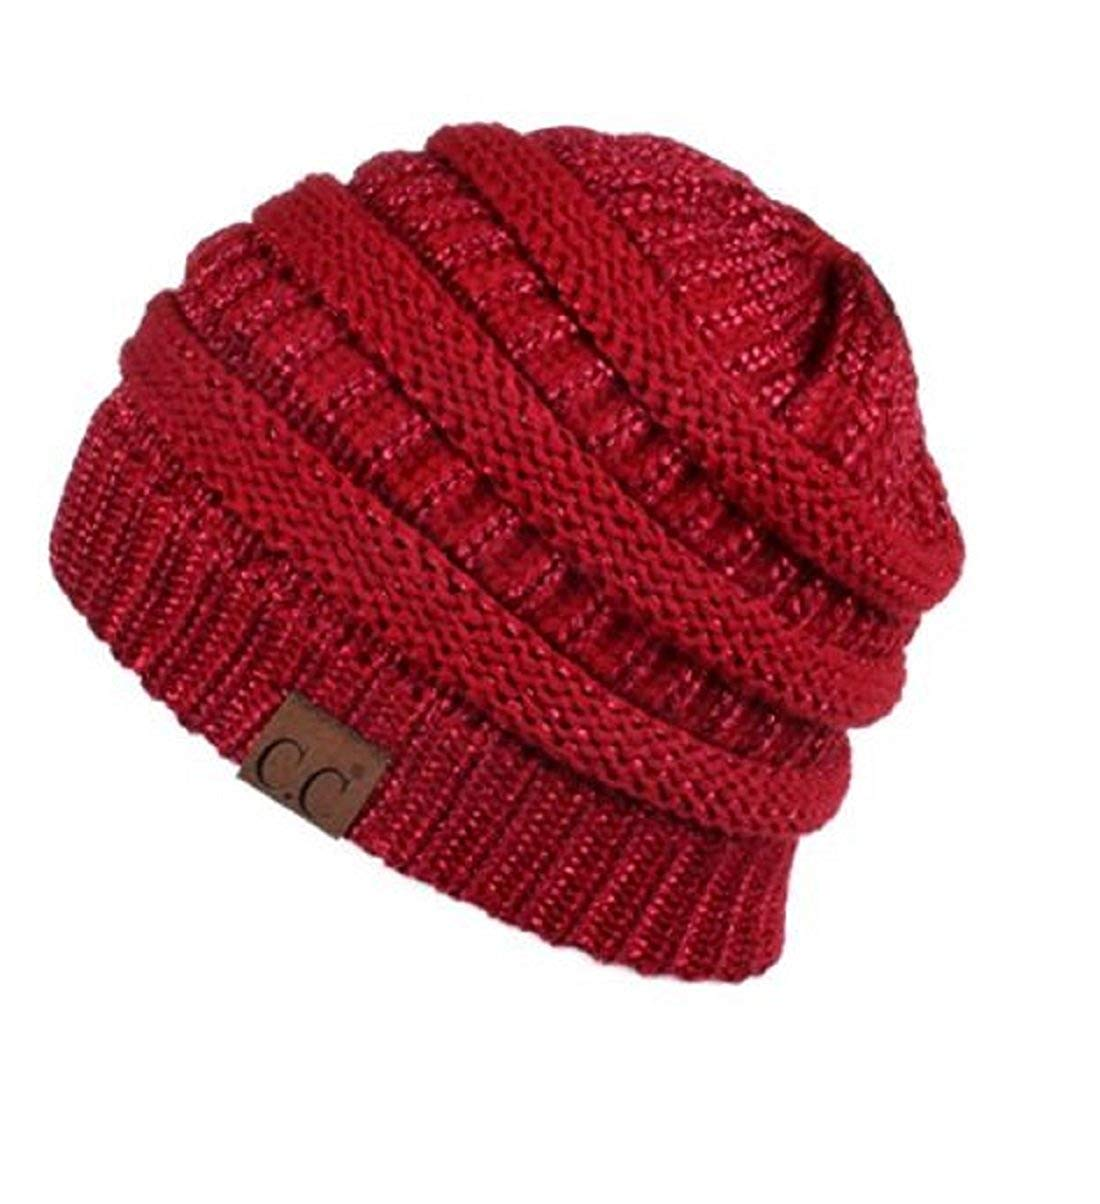 afa50e171b9 Get Quotations · Beanie Toque Hats Soft Stretch Knit Slouchy for Women  Winter Warm Chunky Oversized Trendy Solid